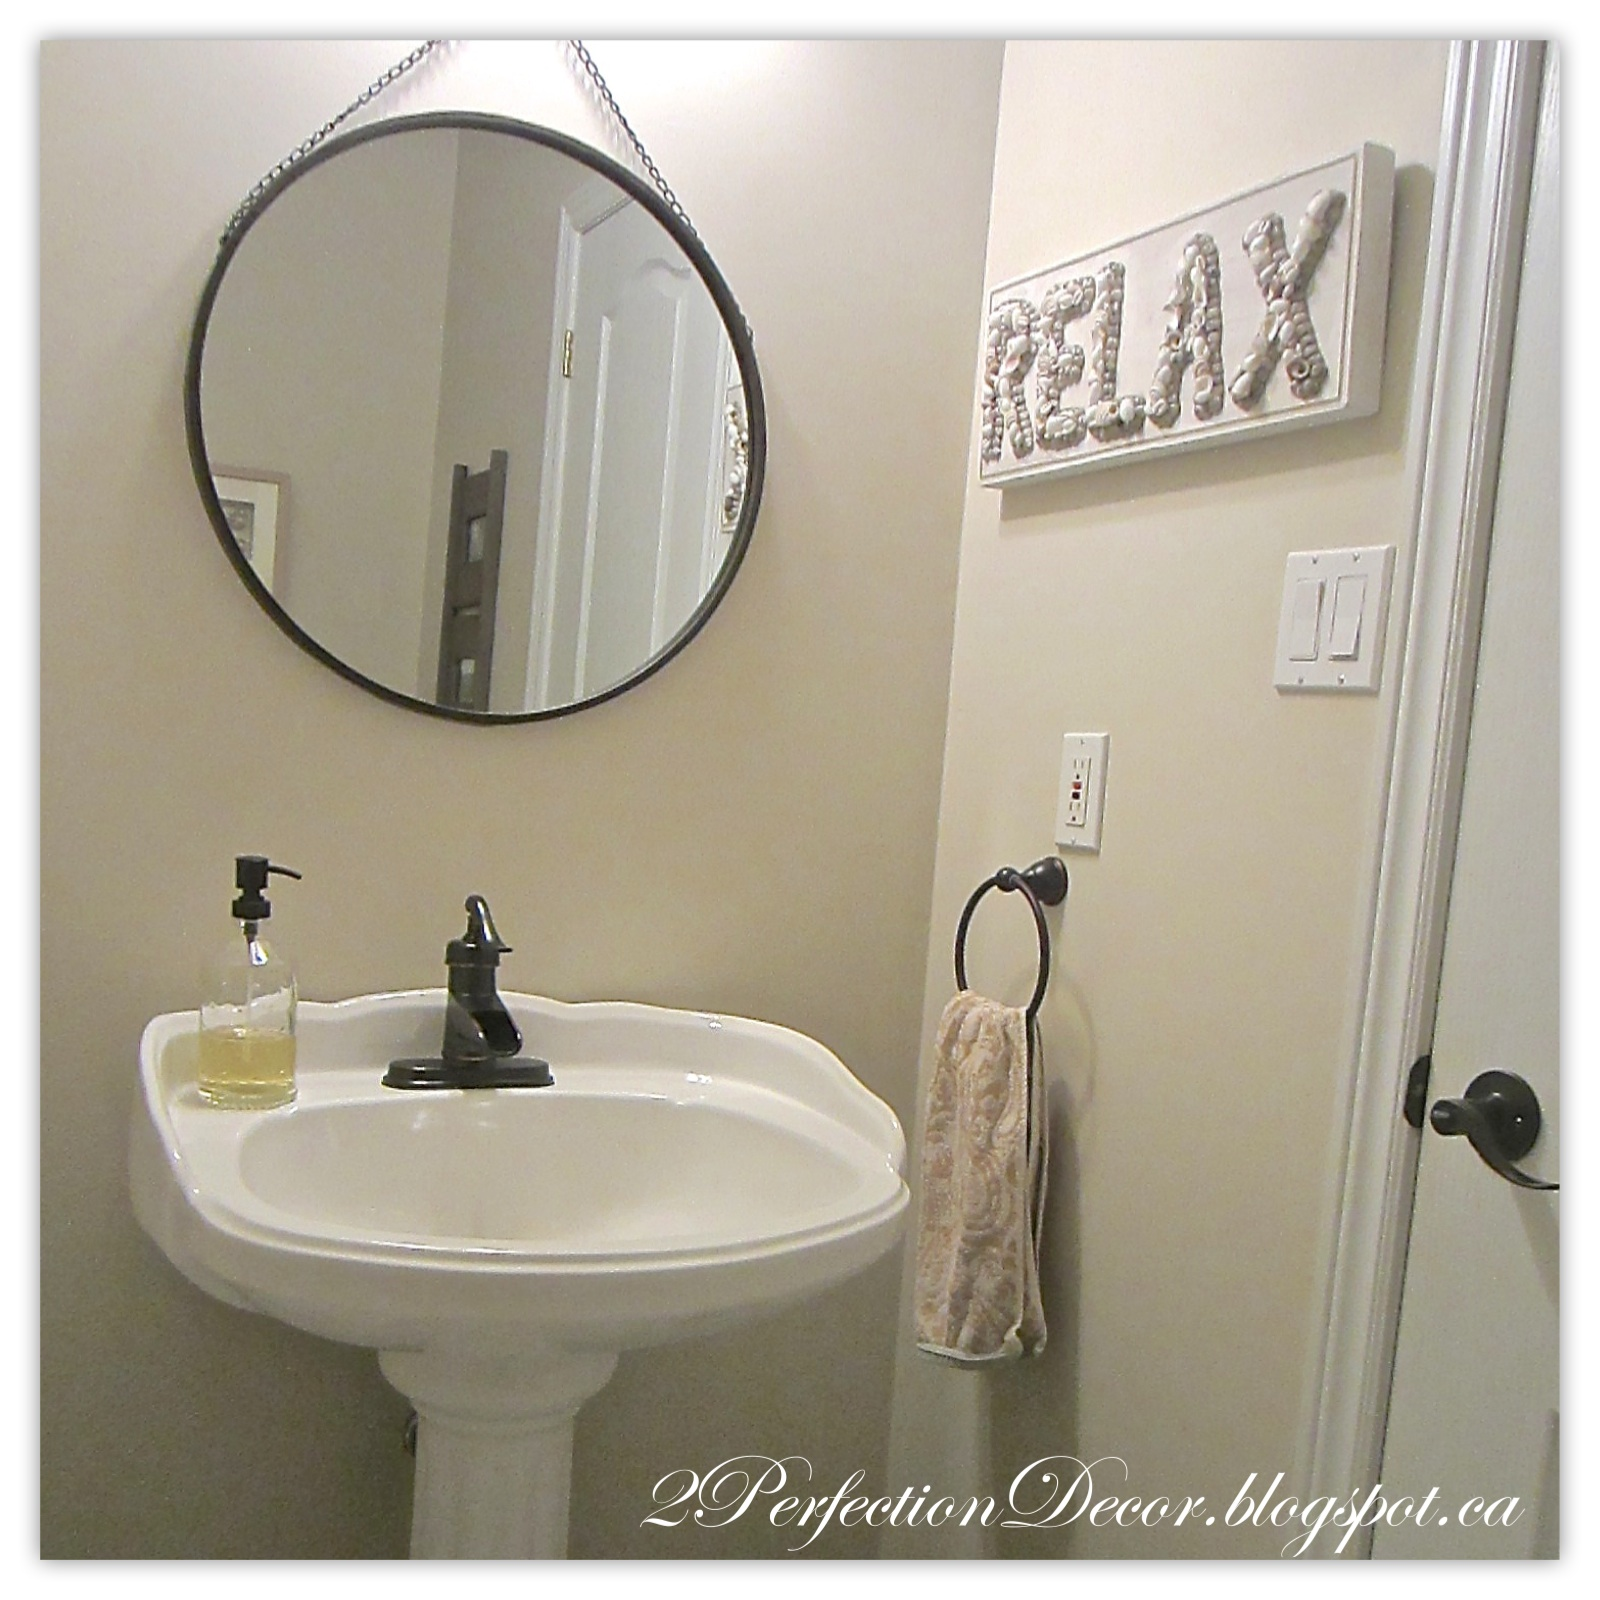 2Perfection Decor: Powder Bath Updates